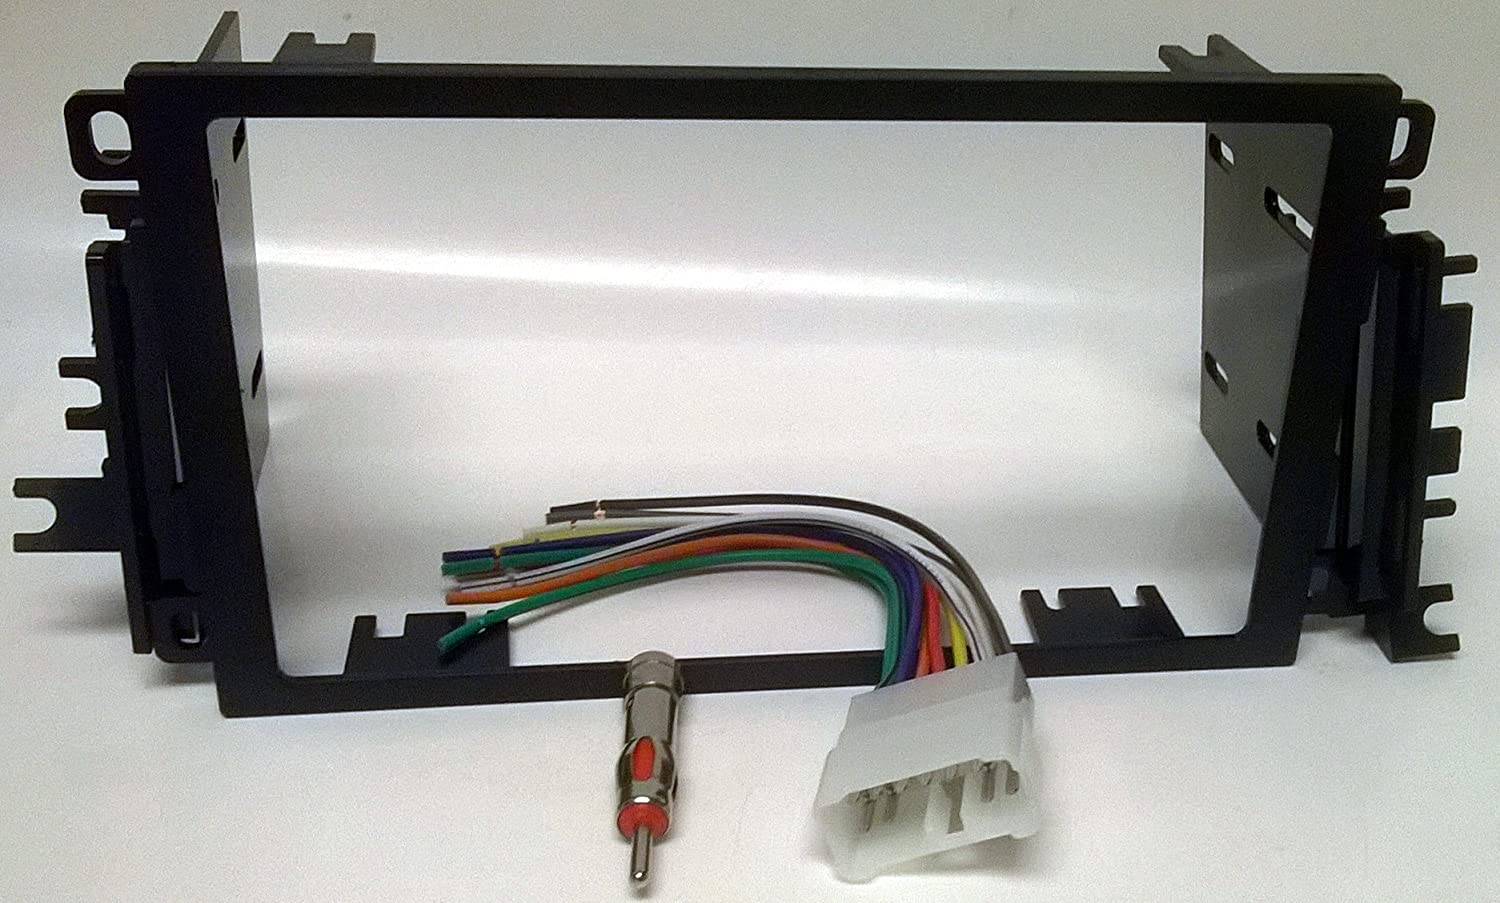 Radio Dash Kit Wire Harness And Antenna Adapter For Double Din Wiring Installing A New Into Suzuki Vitara 1999 2004 Grand